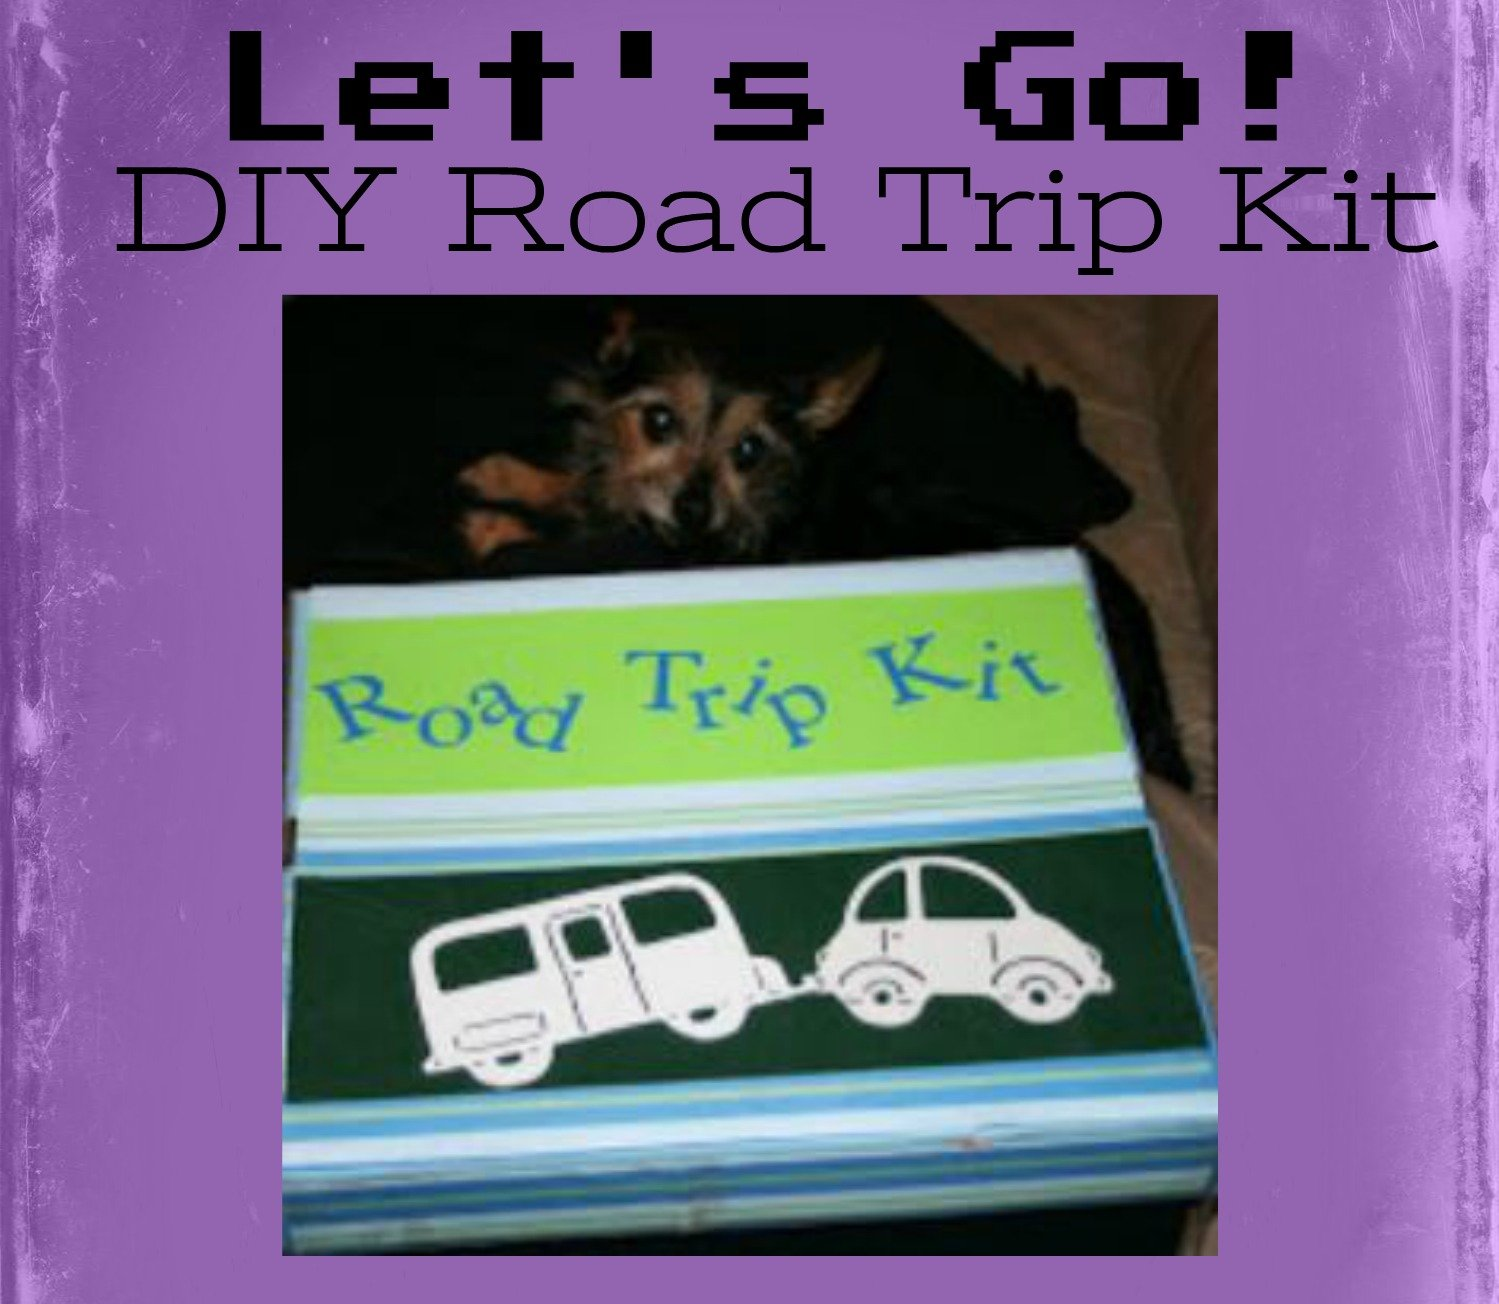 DIY Road Trip Kit